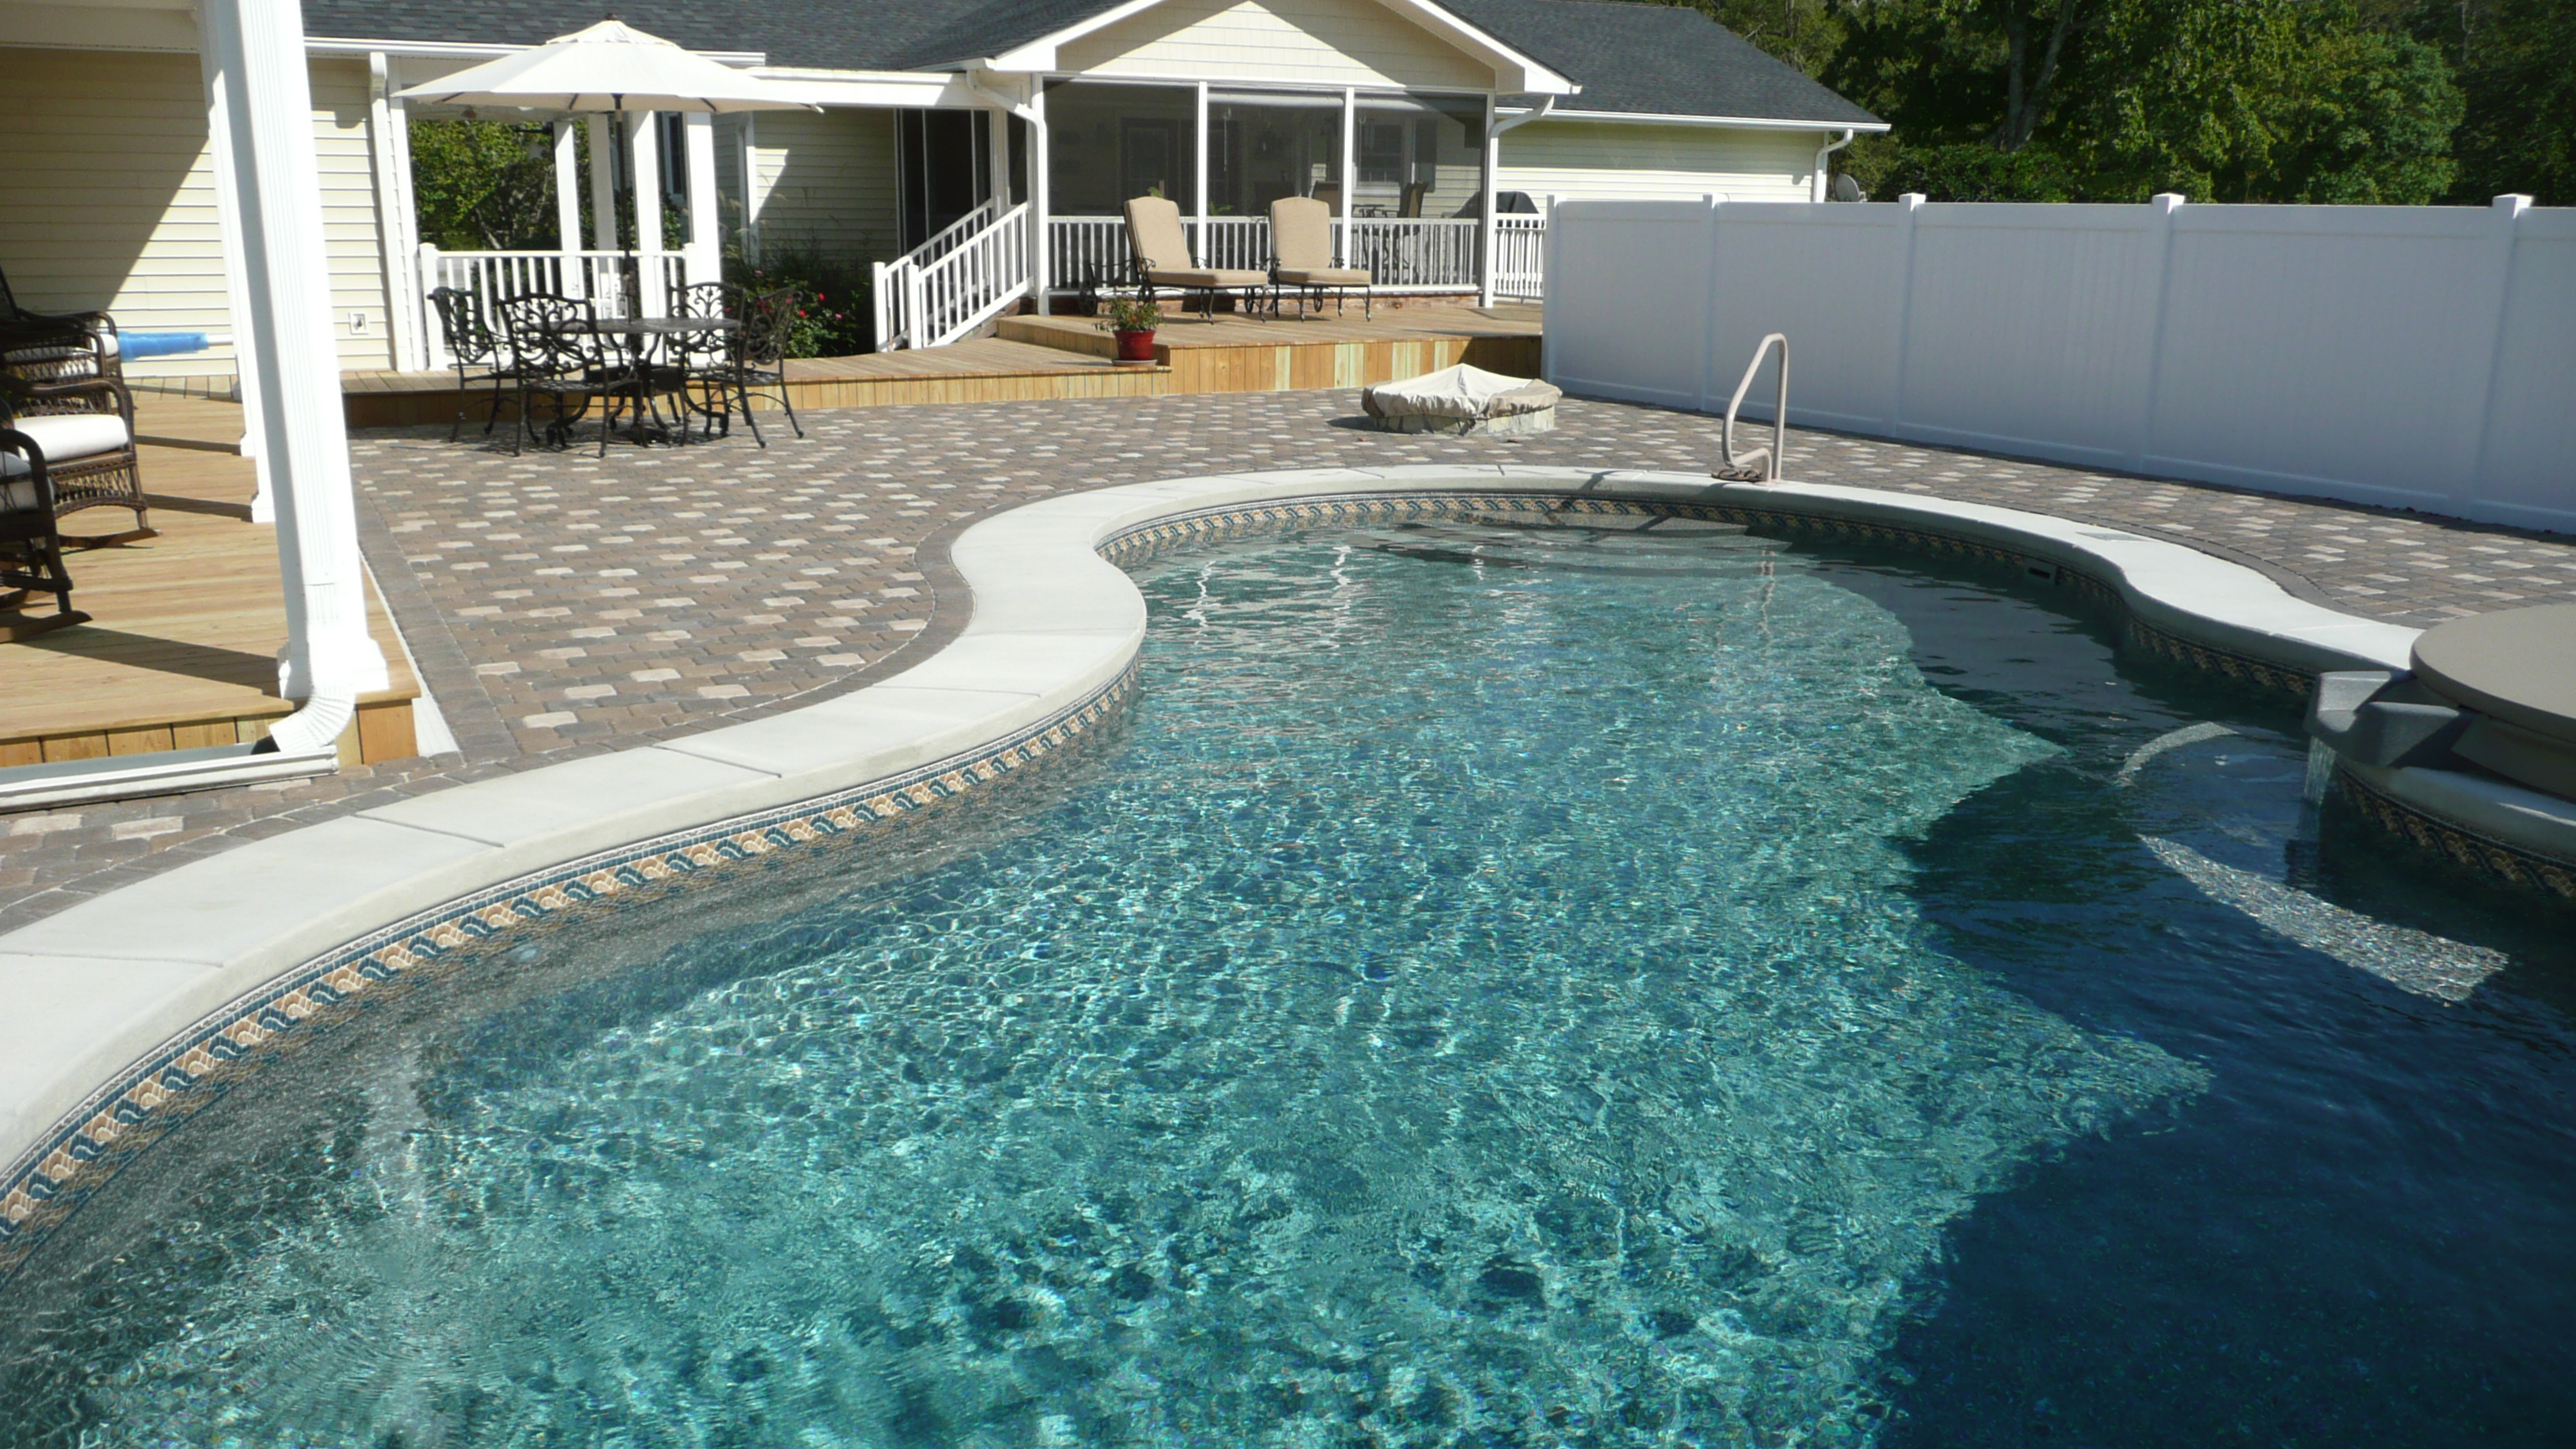 Vinyl Liner with Hot Tub